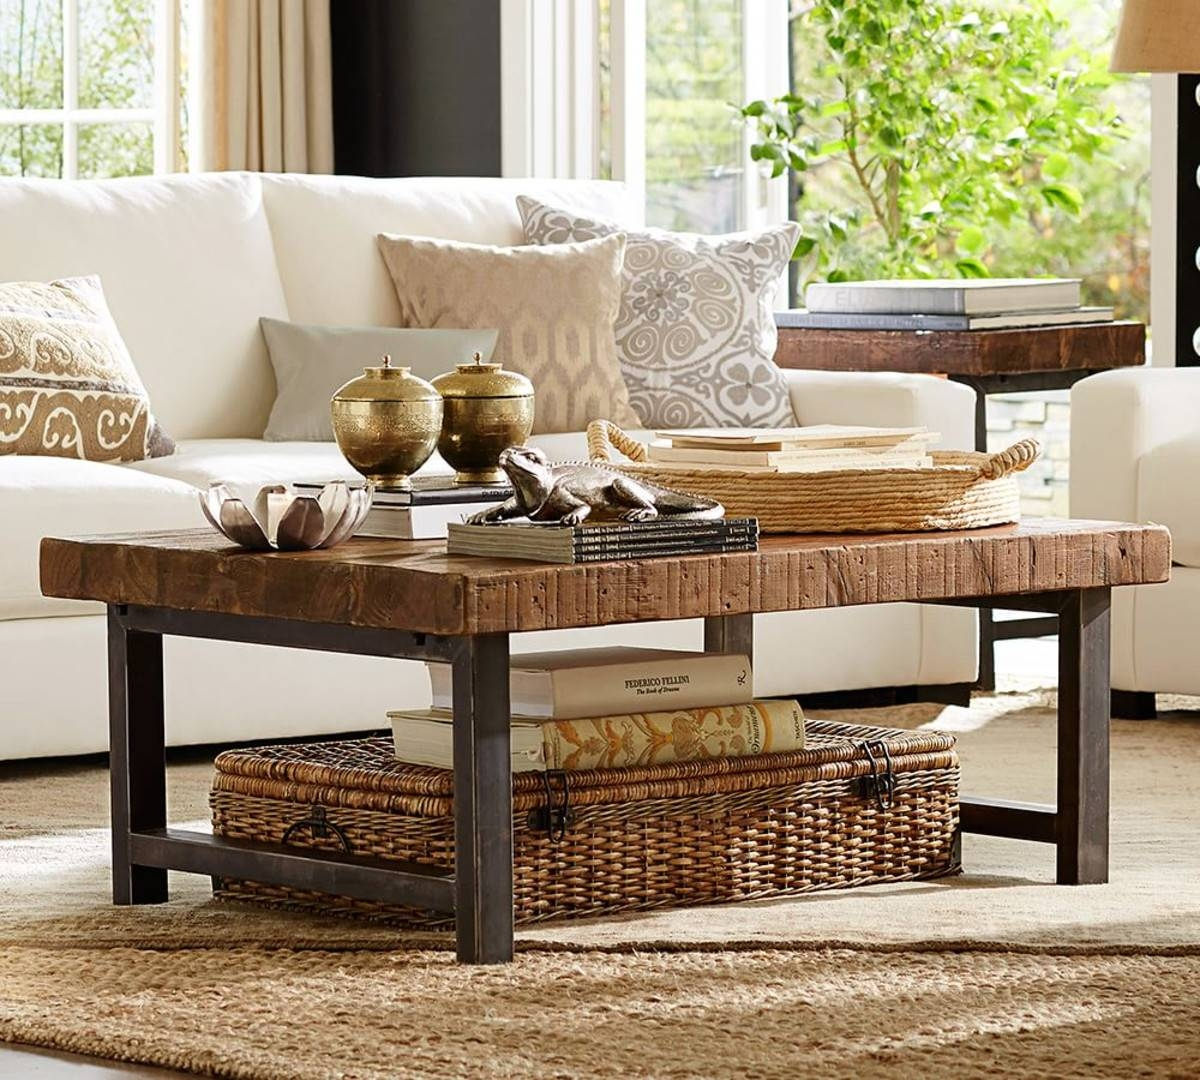 Reclaimed Wood Griffin Coffee Table — Sogocountry Design : Perfect for Griffin Coffee Tables (Image 23 of 30)